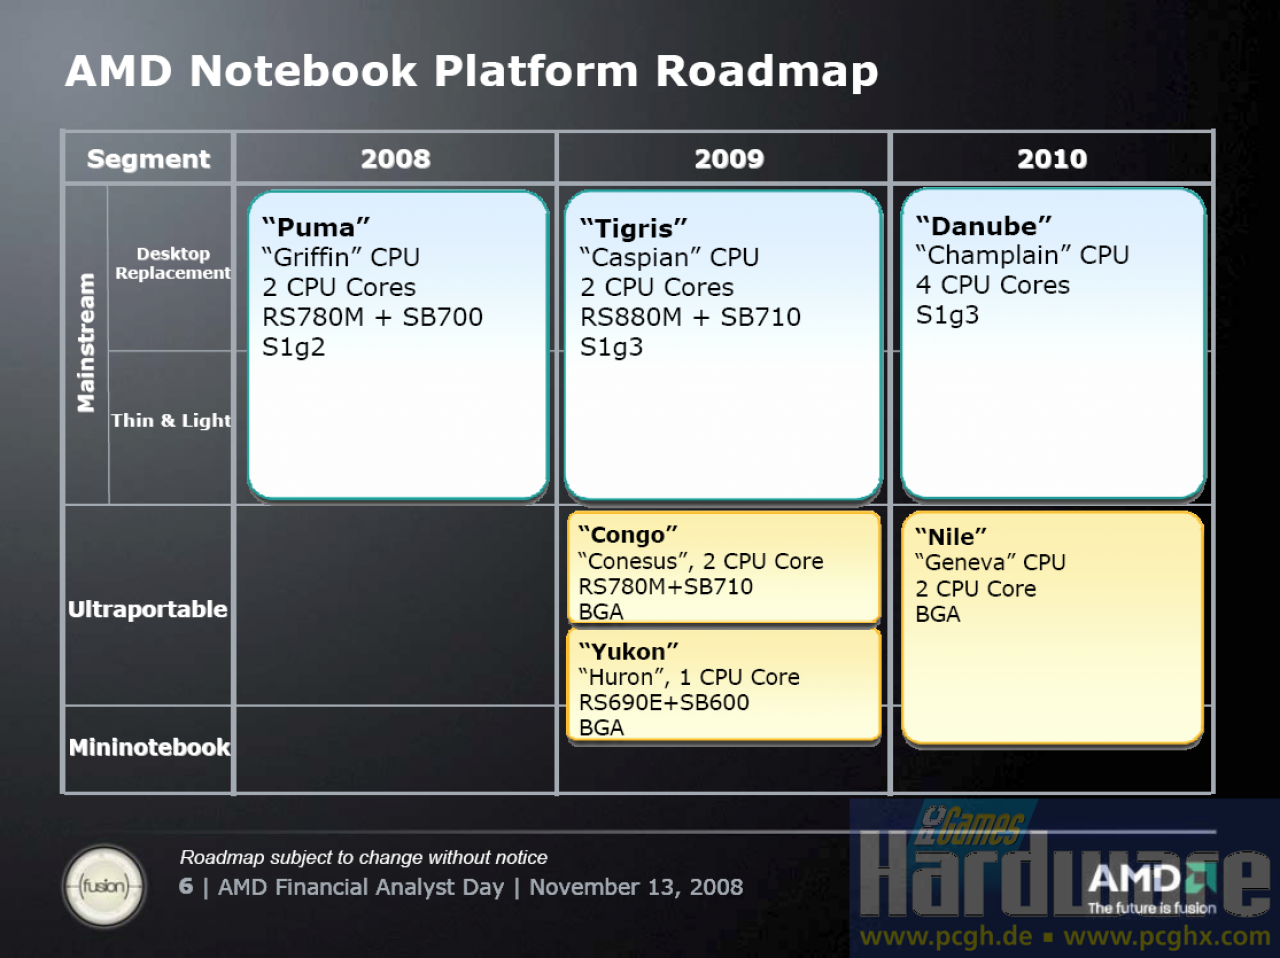 "[13/11/08] At the Financial Analyst Day 2008 AMD presented details to the mobile platforms of the Puma successor Tigris (Dual-Core) as well as the platforms for ultra portable (""Congo"") and mini notebooks (""Yukon""). All important information you find here."